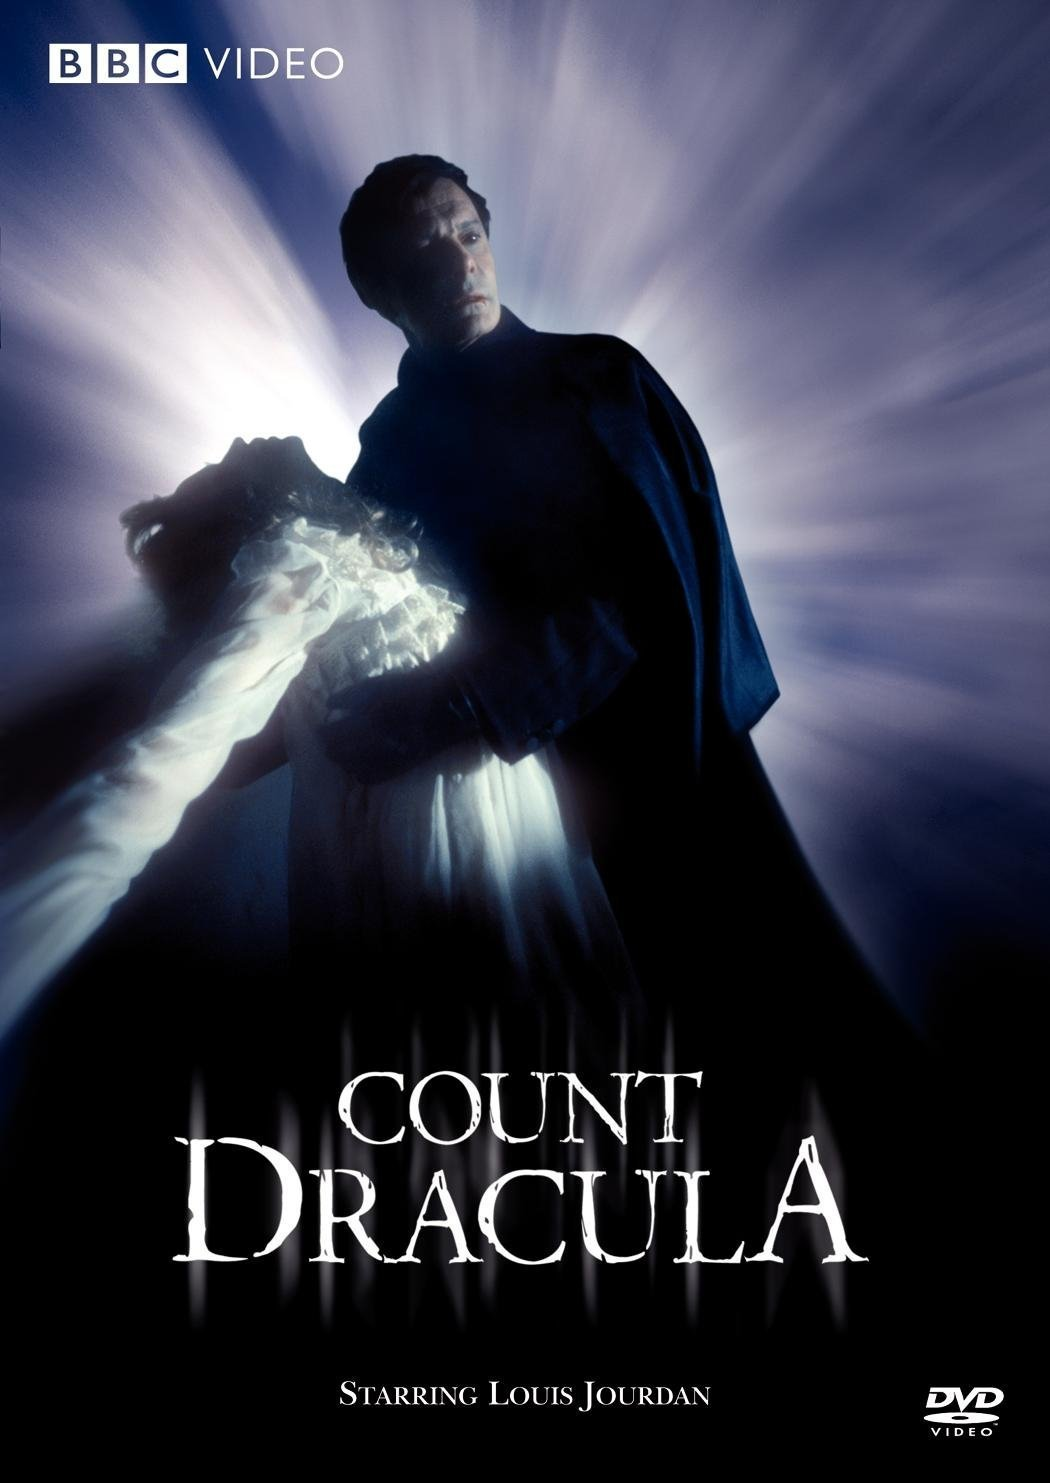 Count Dracula (BBC Mini-Series) DVD